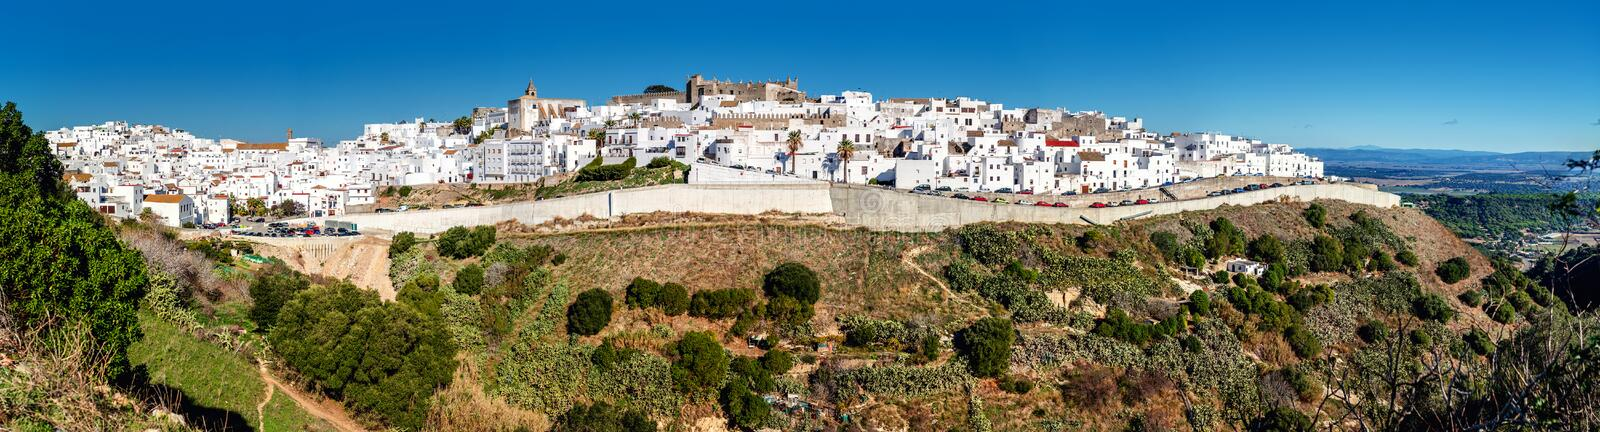 Panorama of Vejer de la Frontera. Costa de la Luz, Spain royalty free stock photo